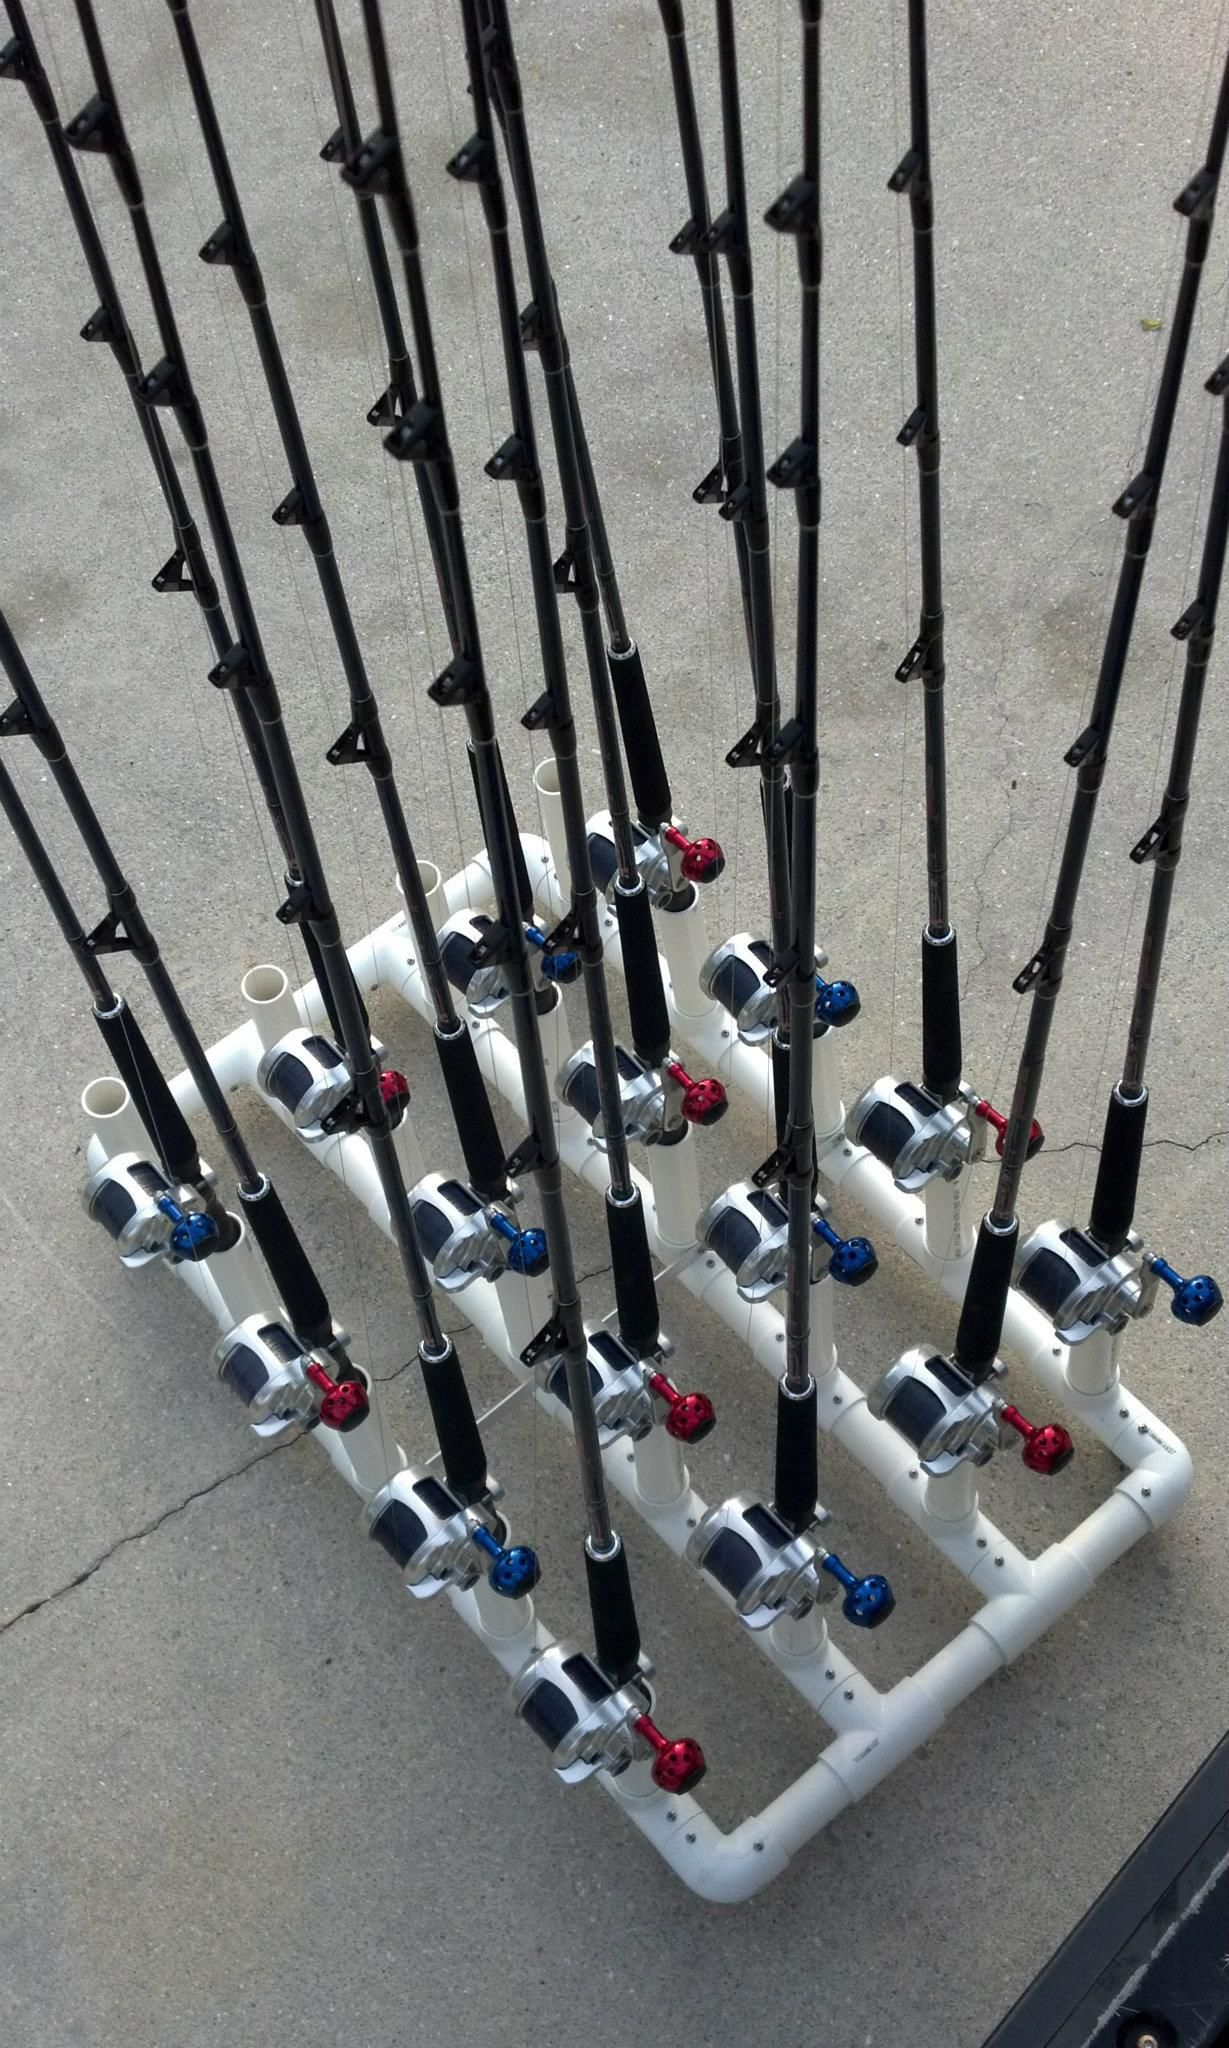 Pvc fishing rod holder ideas fishing rod holder for Homemade fishing rod holders